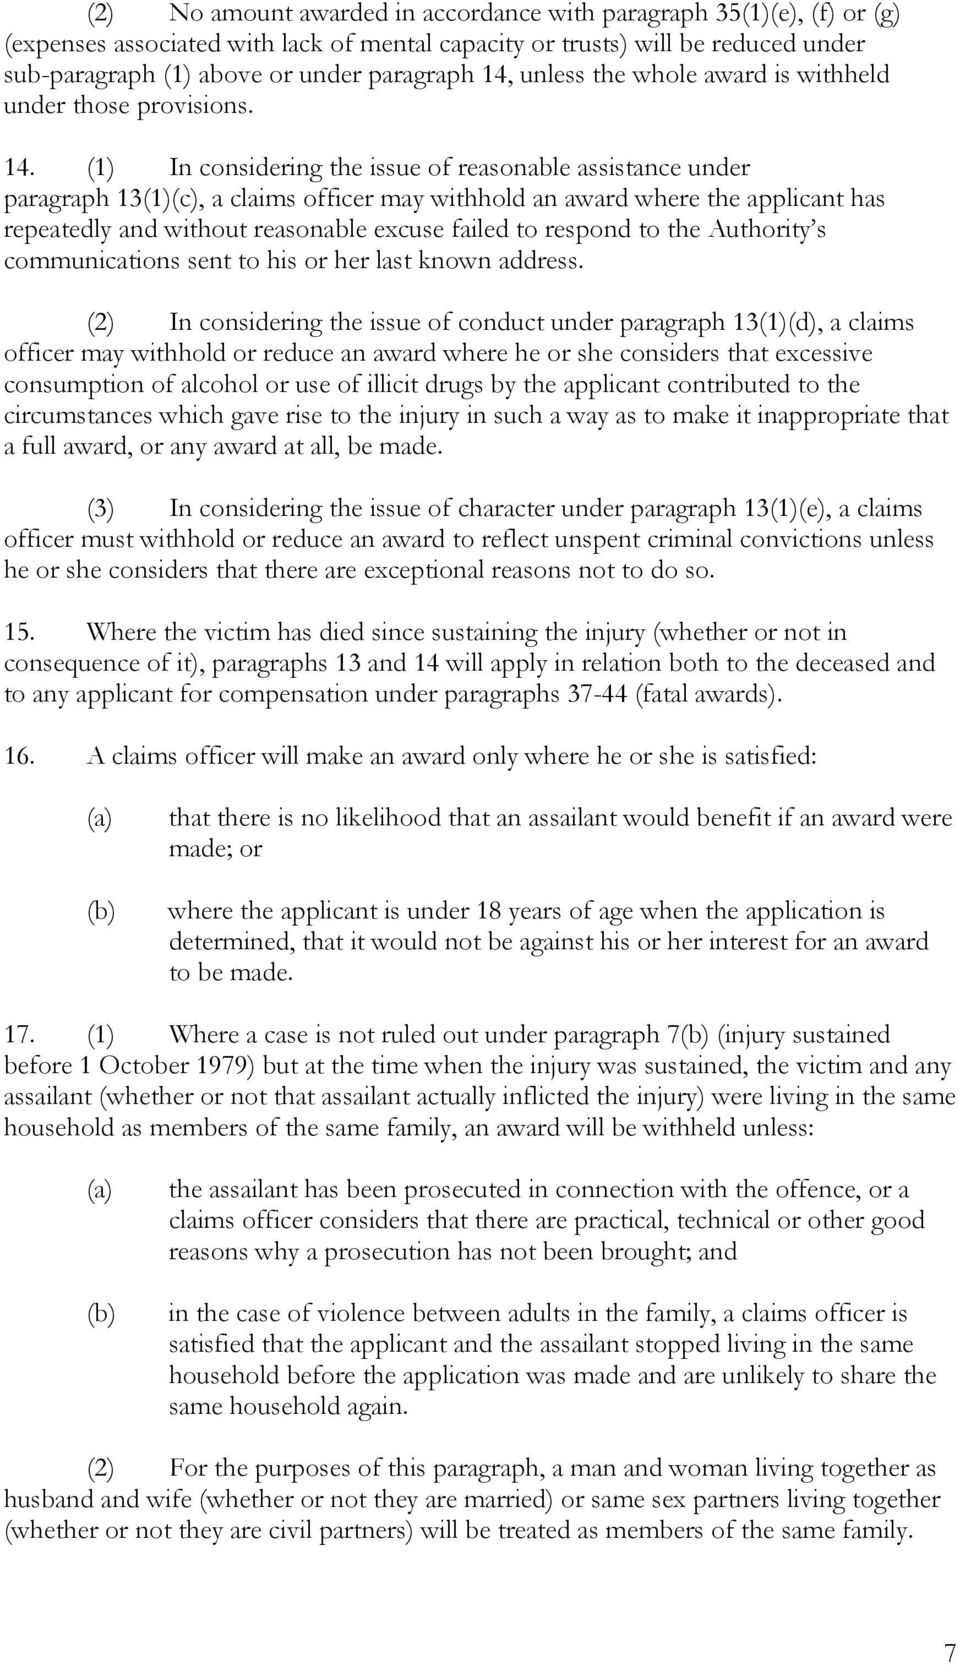 (1) In considering the issue of reasonable assistance under paragraph 13(1)(c), a claims officer may withhold an award where the applicant has repeatedly and without reasonable excuse failed to